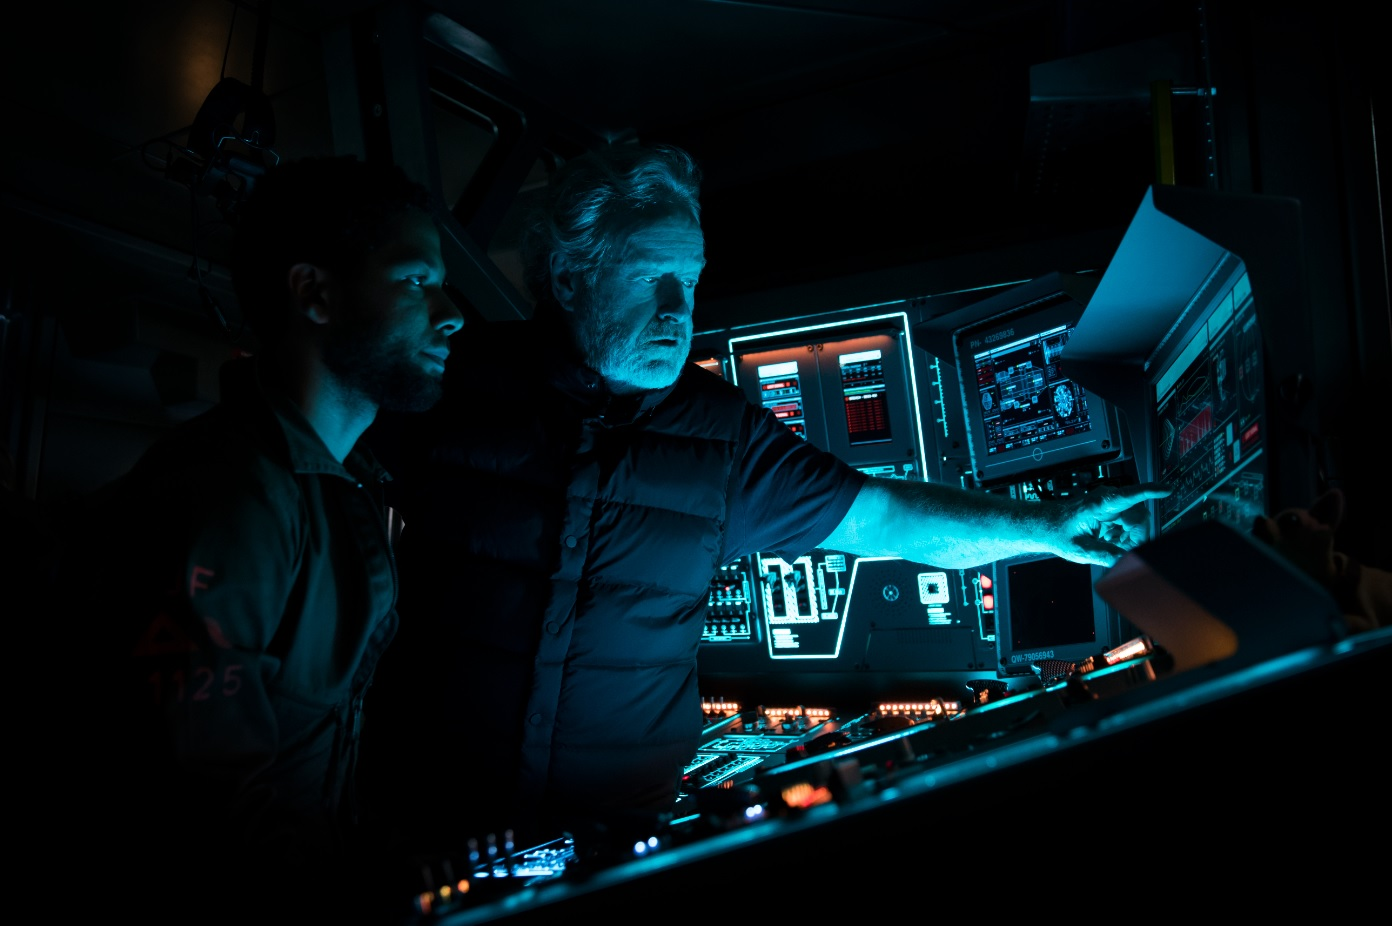 Ridley Scott on Alien: Covenant set